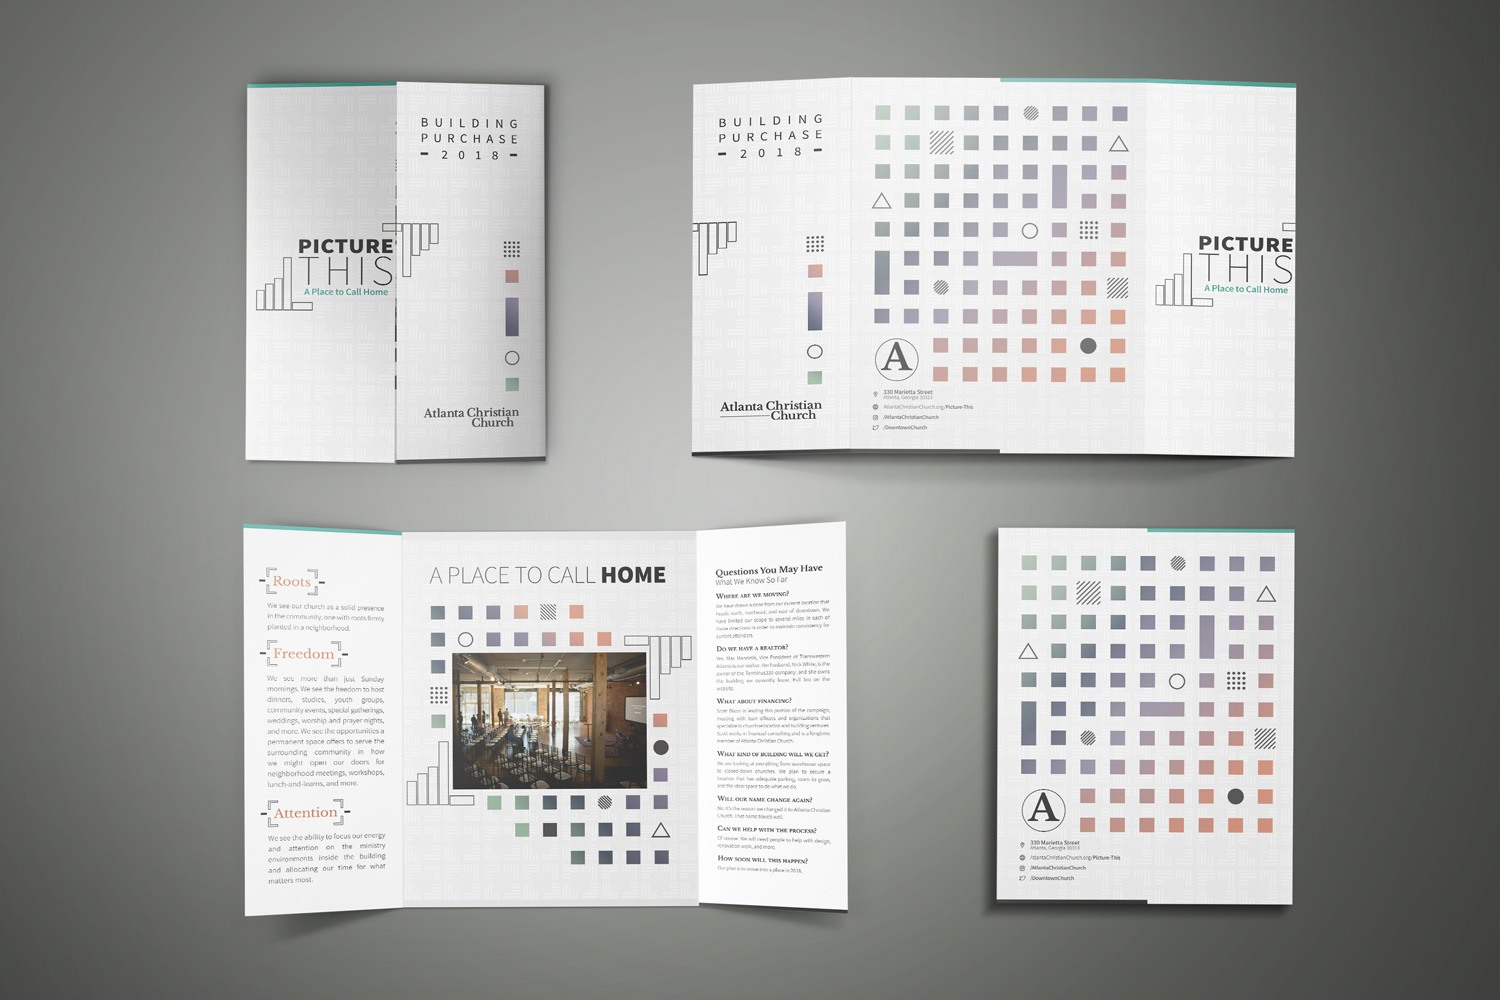 church capital stewardship campaign brochures examples case statement ideas for design.